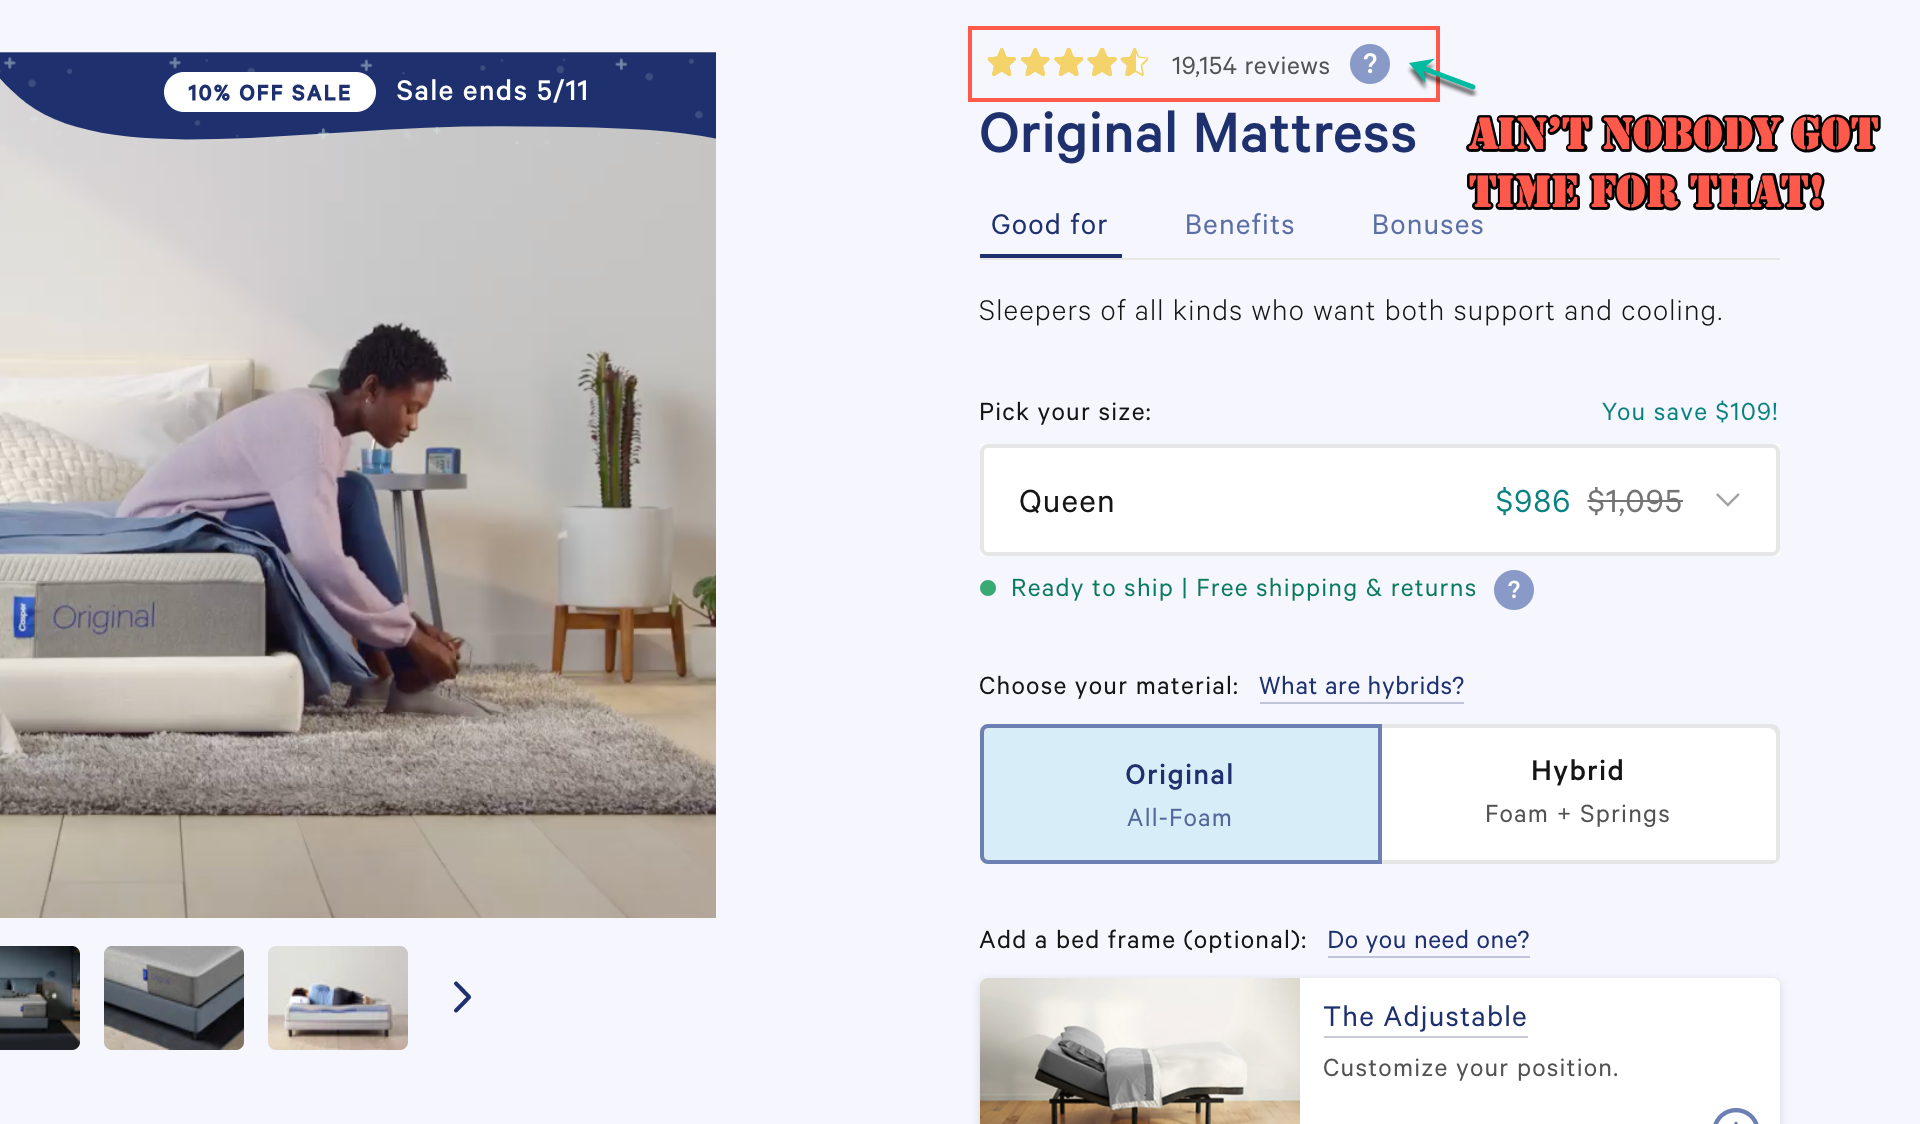 The buyer psychology of product pages with thousands of reviews.